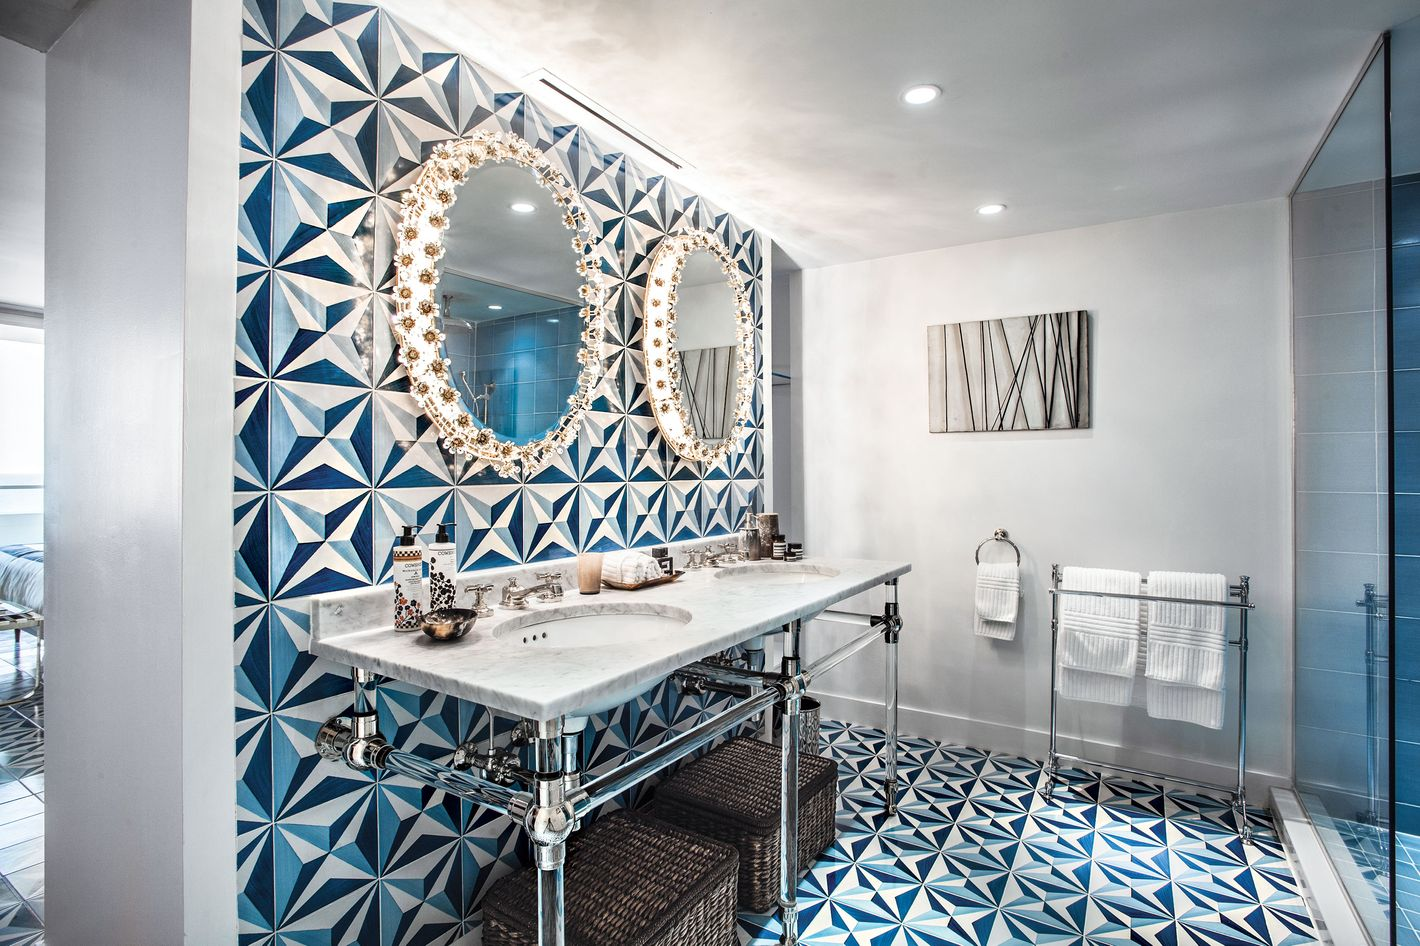 Colorful Bathroom Tiles Miami Crest - Bathroom Design Ideas - tykkk.info